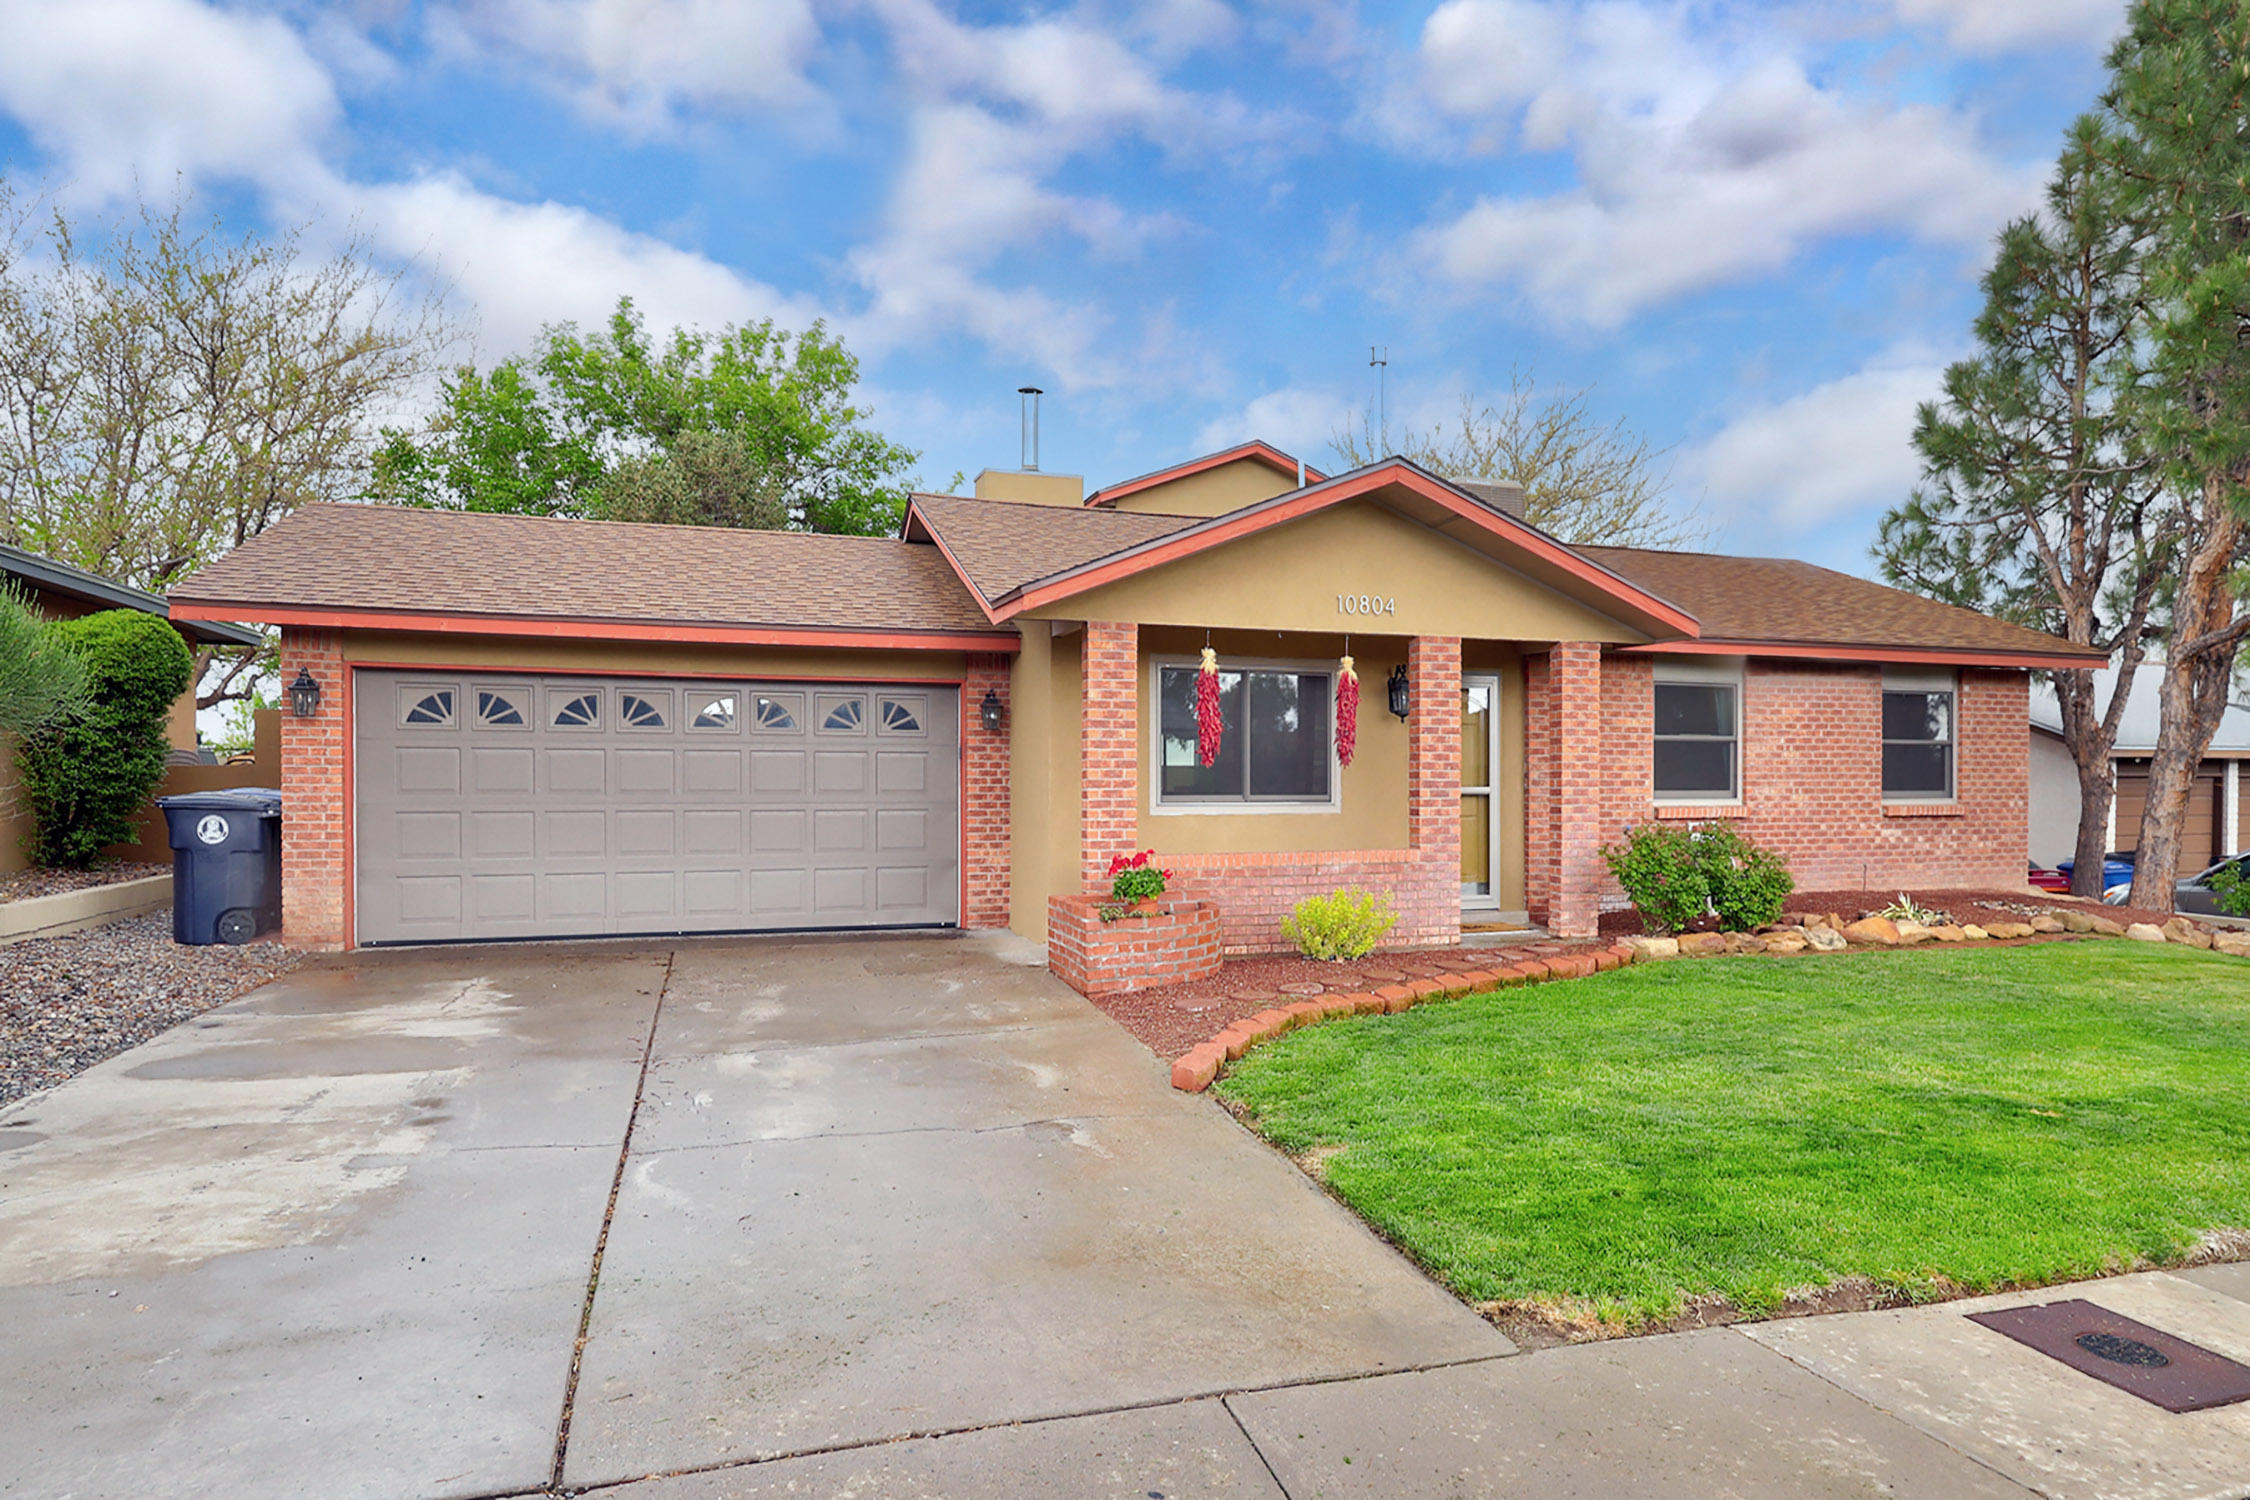 So much to love- Delightful home with 4 bedrooms plus an office space.  Current owner did numerous updates and upgrades Pella windows (2015), New Breeeze Air Cooler & Heater (2015)- serviced annually by B Carlson,  Tankless water Heater (2019), Roof (2011), Synthetic Stucco 2016, Bamboo flooring throughout the home (except for kitchen and baths), updated bathrooms,  replaced interior  doors w solid wood doors.  This home is all on one level except for one bedroom upstairs with a mountain view! Beautifully landscaped yards- back has garden beds all on drip.  Hop the back wall to be at Eisenhower middle school.  Call for your private showing.